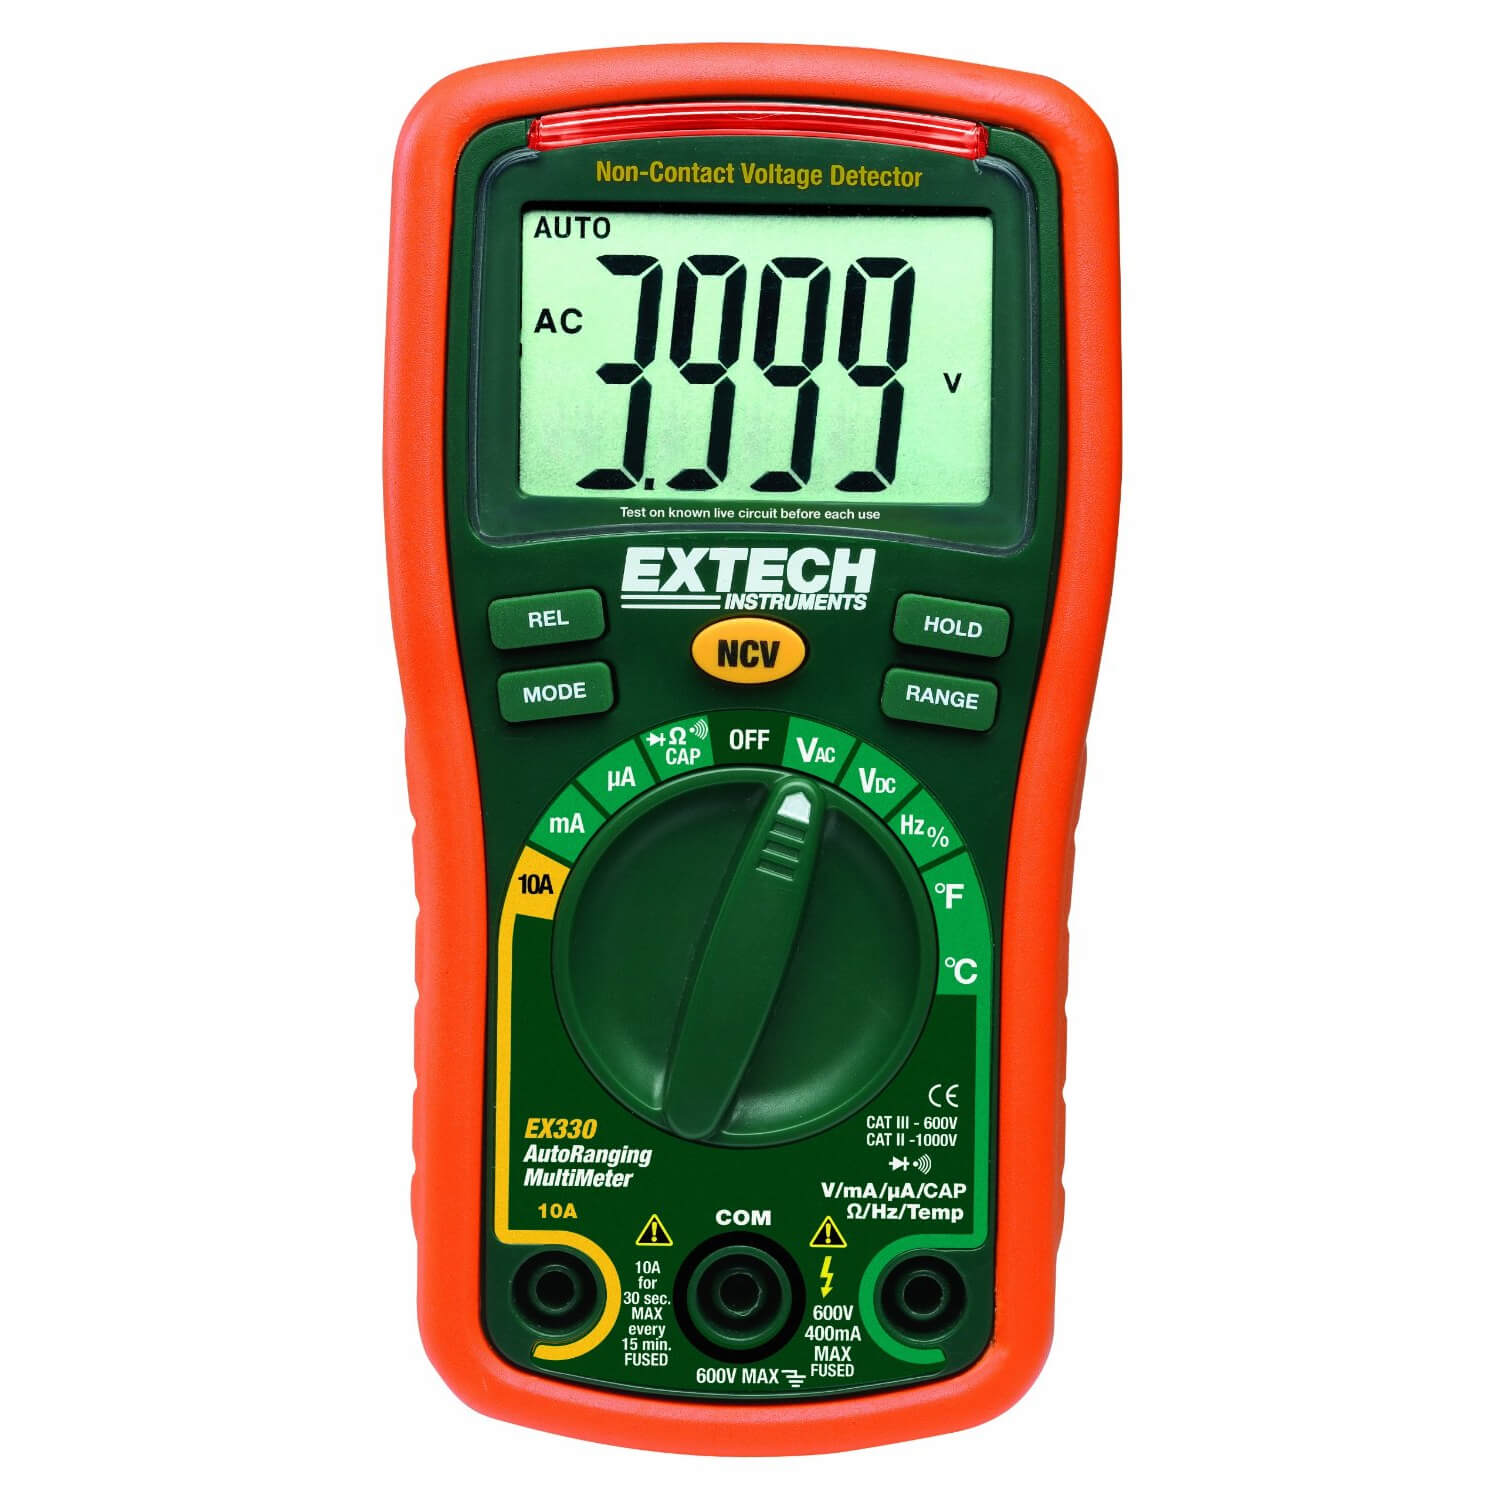 Extech EX330 Miniature Digital Multimeter with Thermocouple Temp